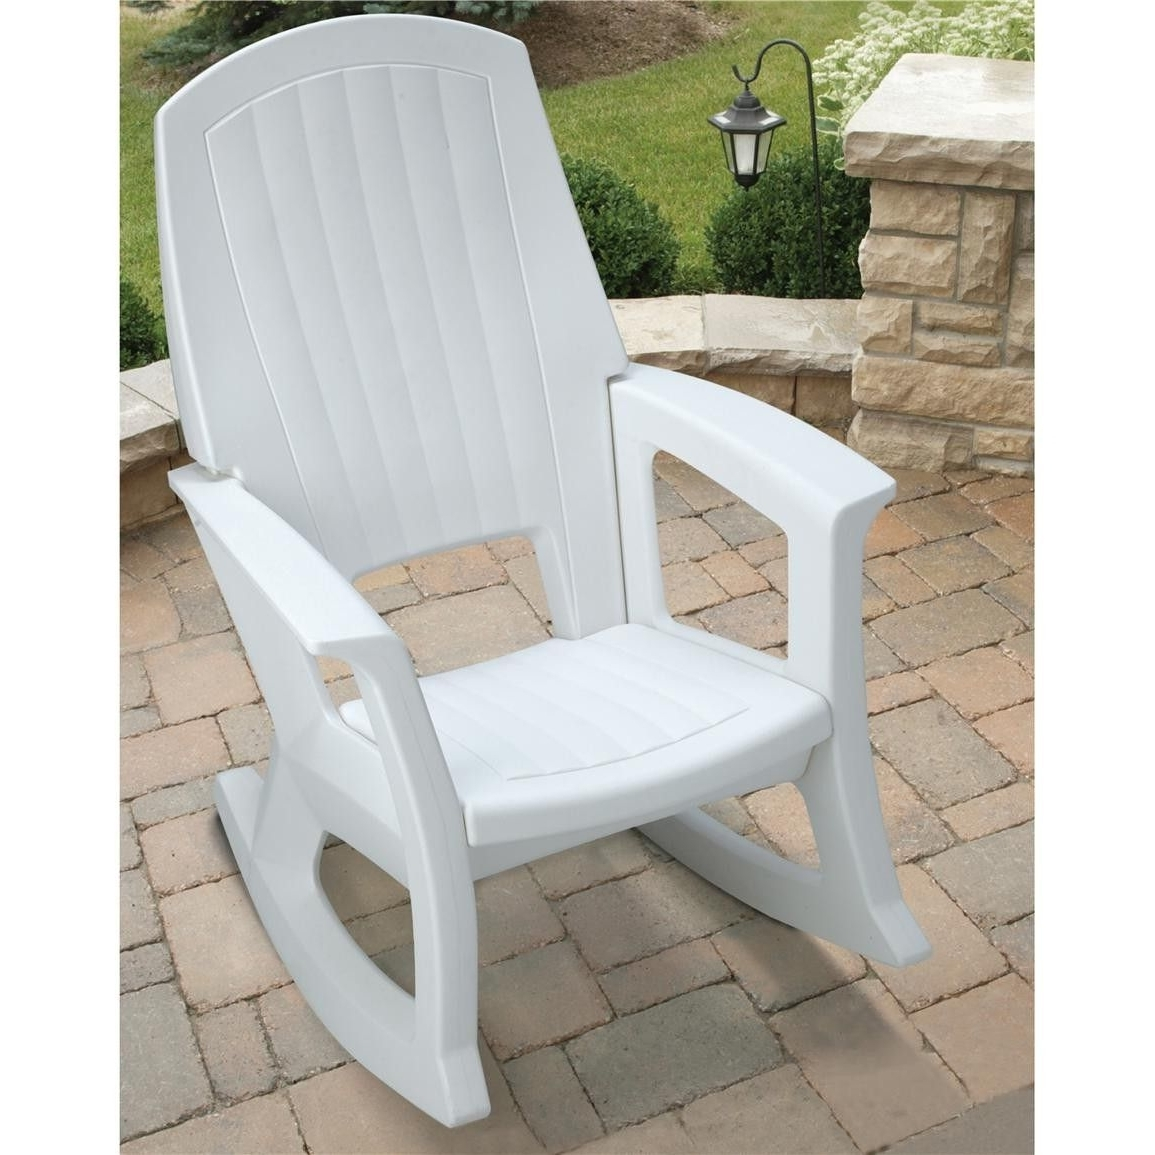 White Resin Patio Rocking Chairs intended for Well known Semco Plastics White Resin Outdoor Patio Rocking Chair Semw : Rural